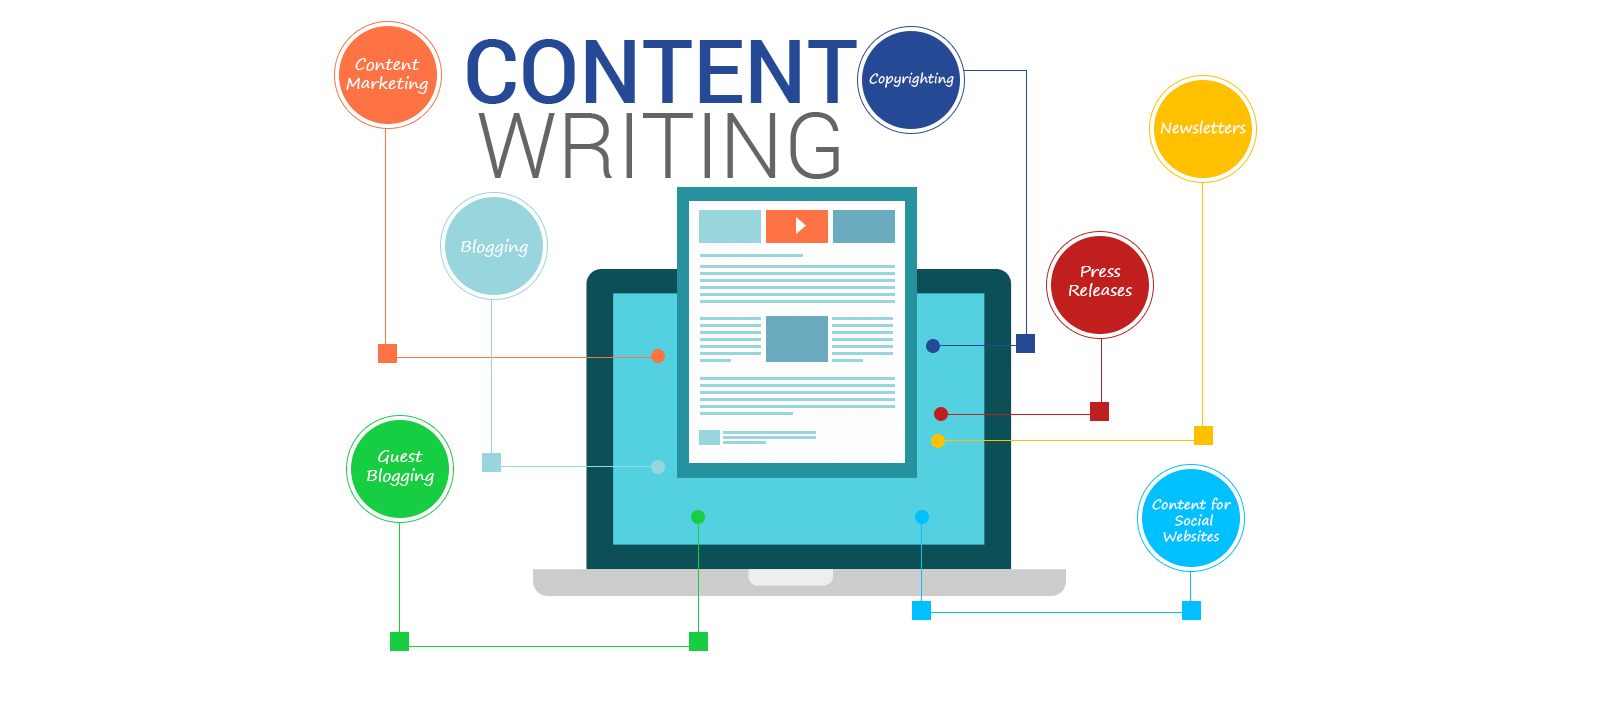 2000 words SEO friendly for your blogs